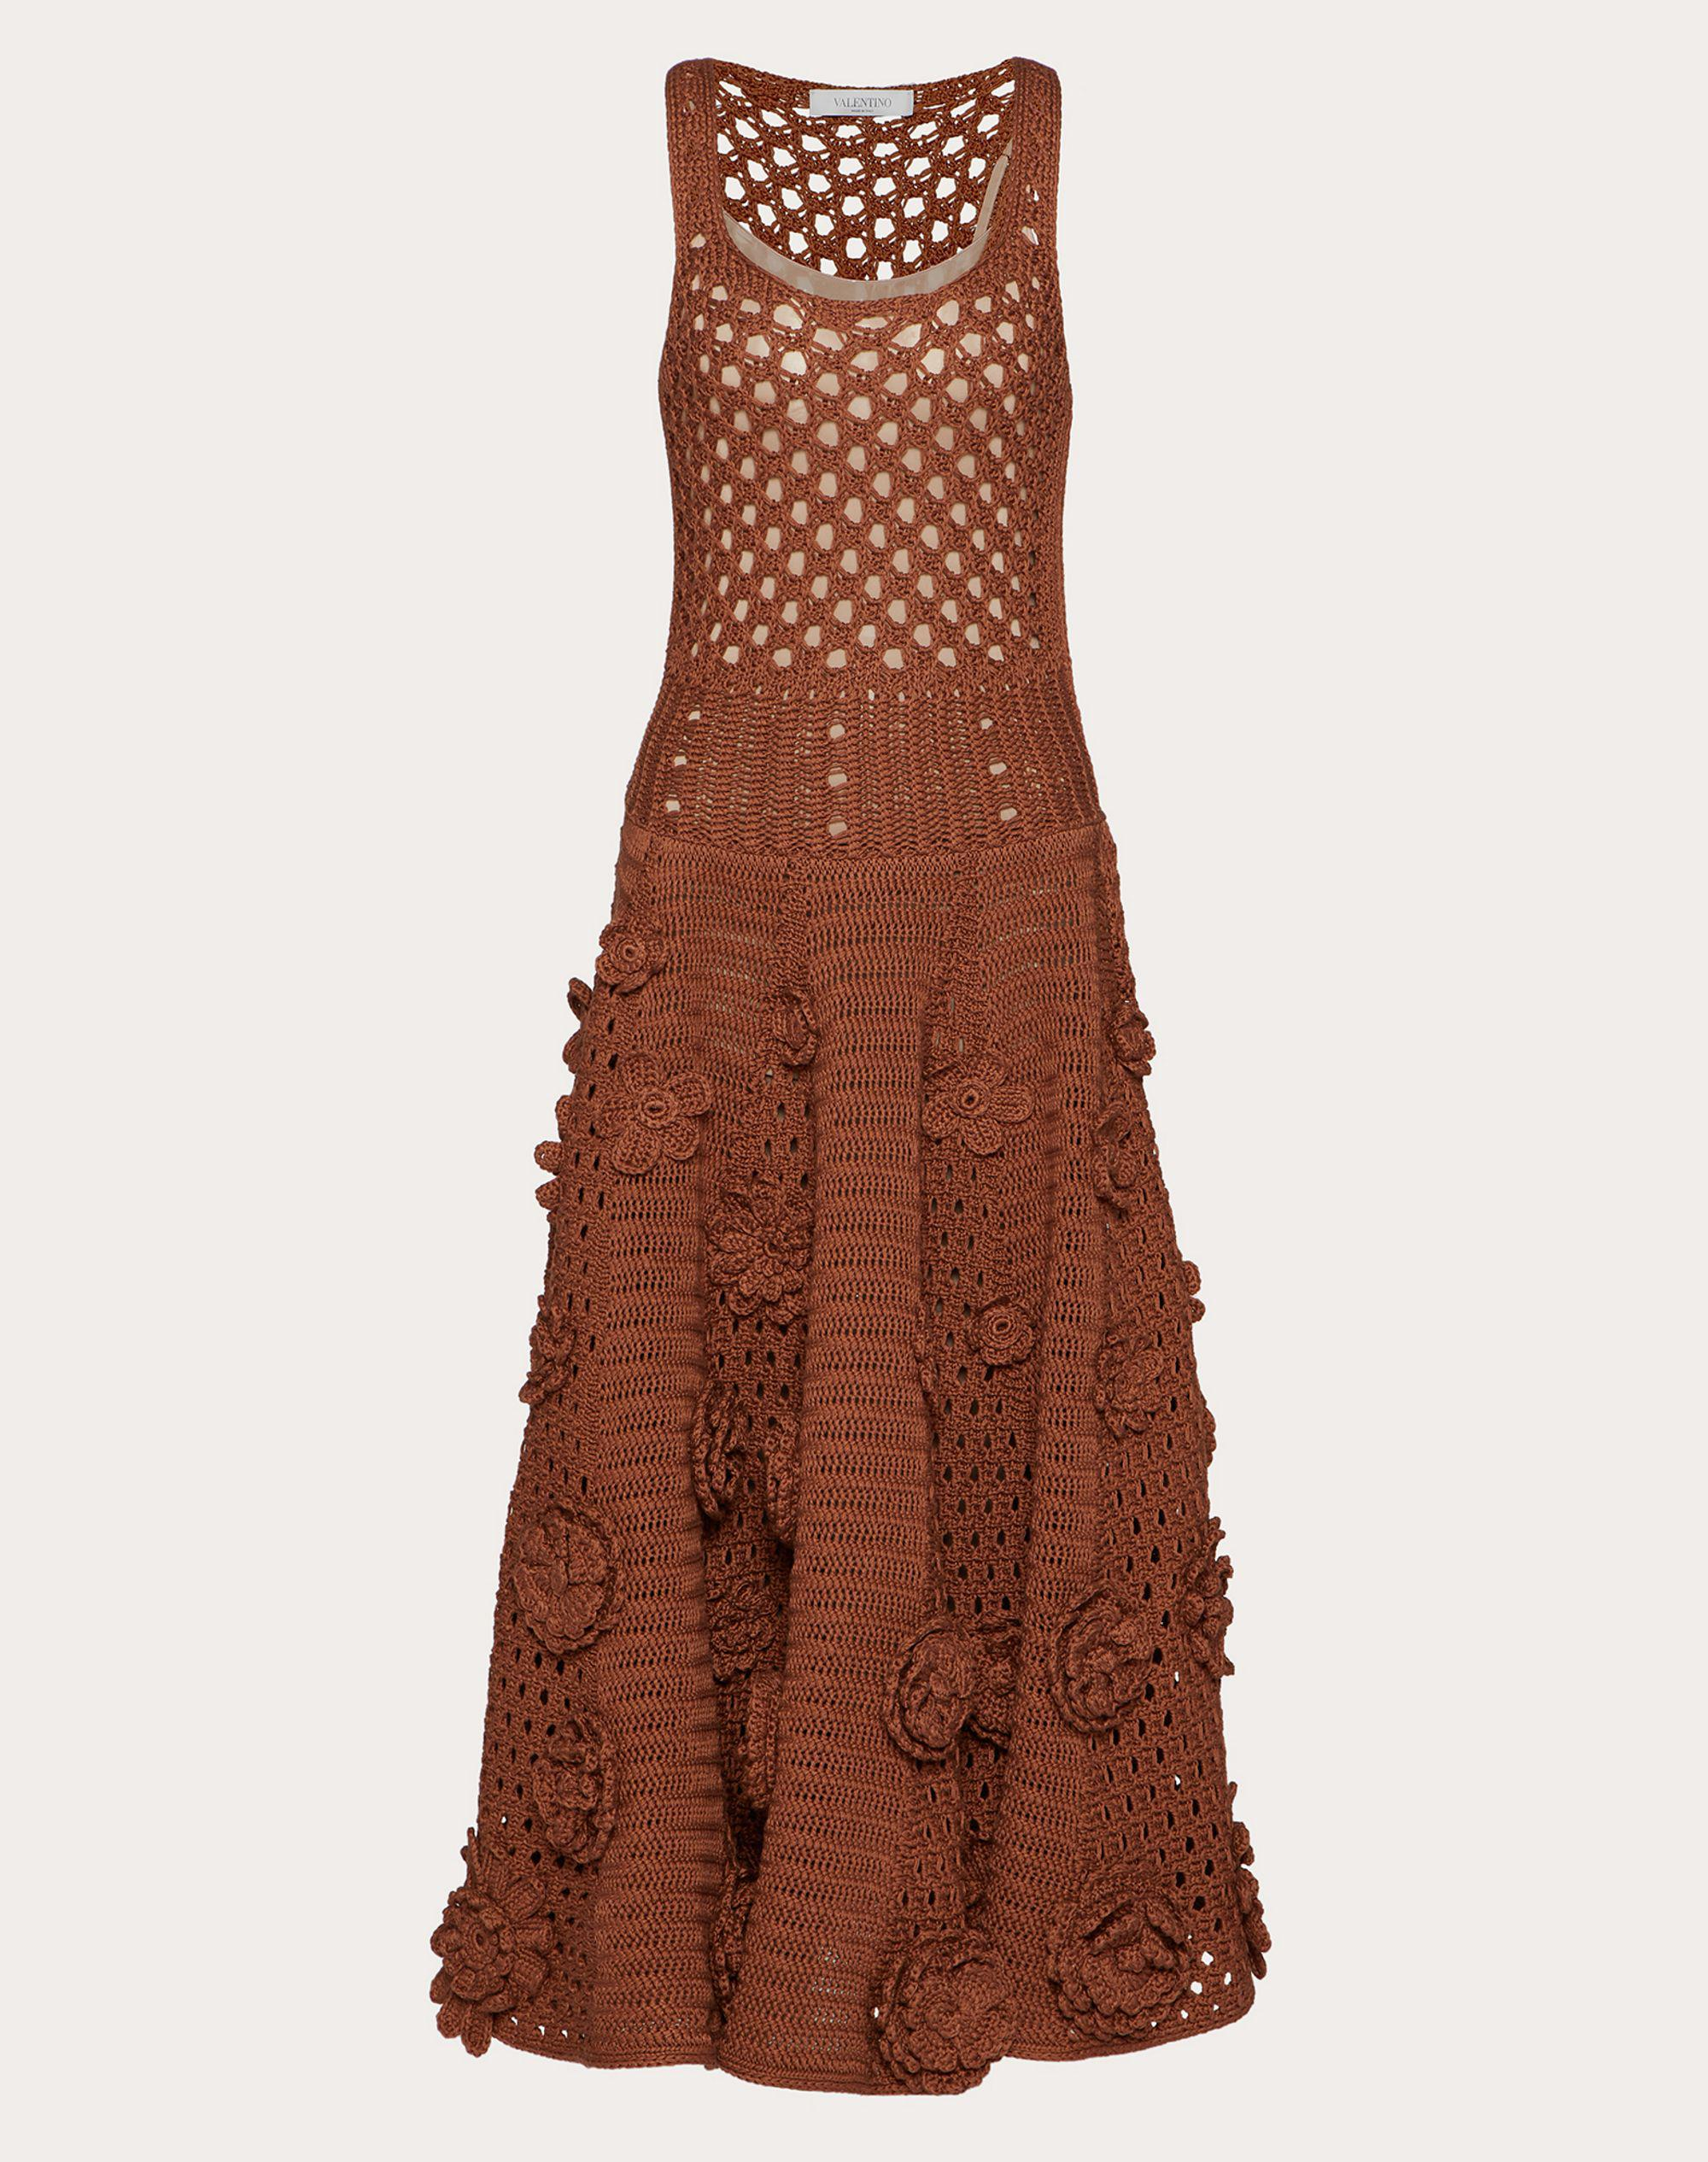 EMBROIDERED COTTON KNITTED DRESS 4